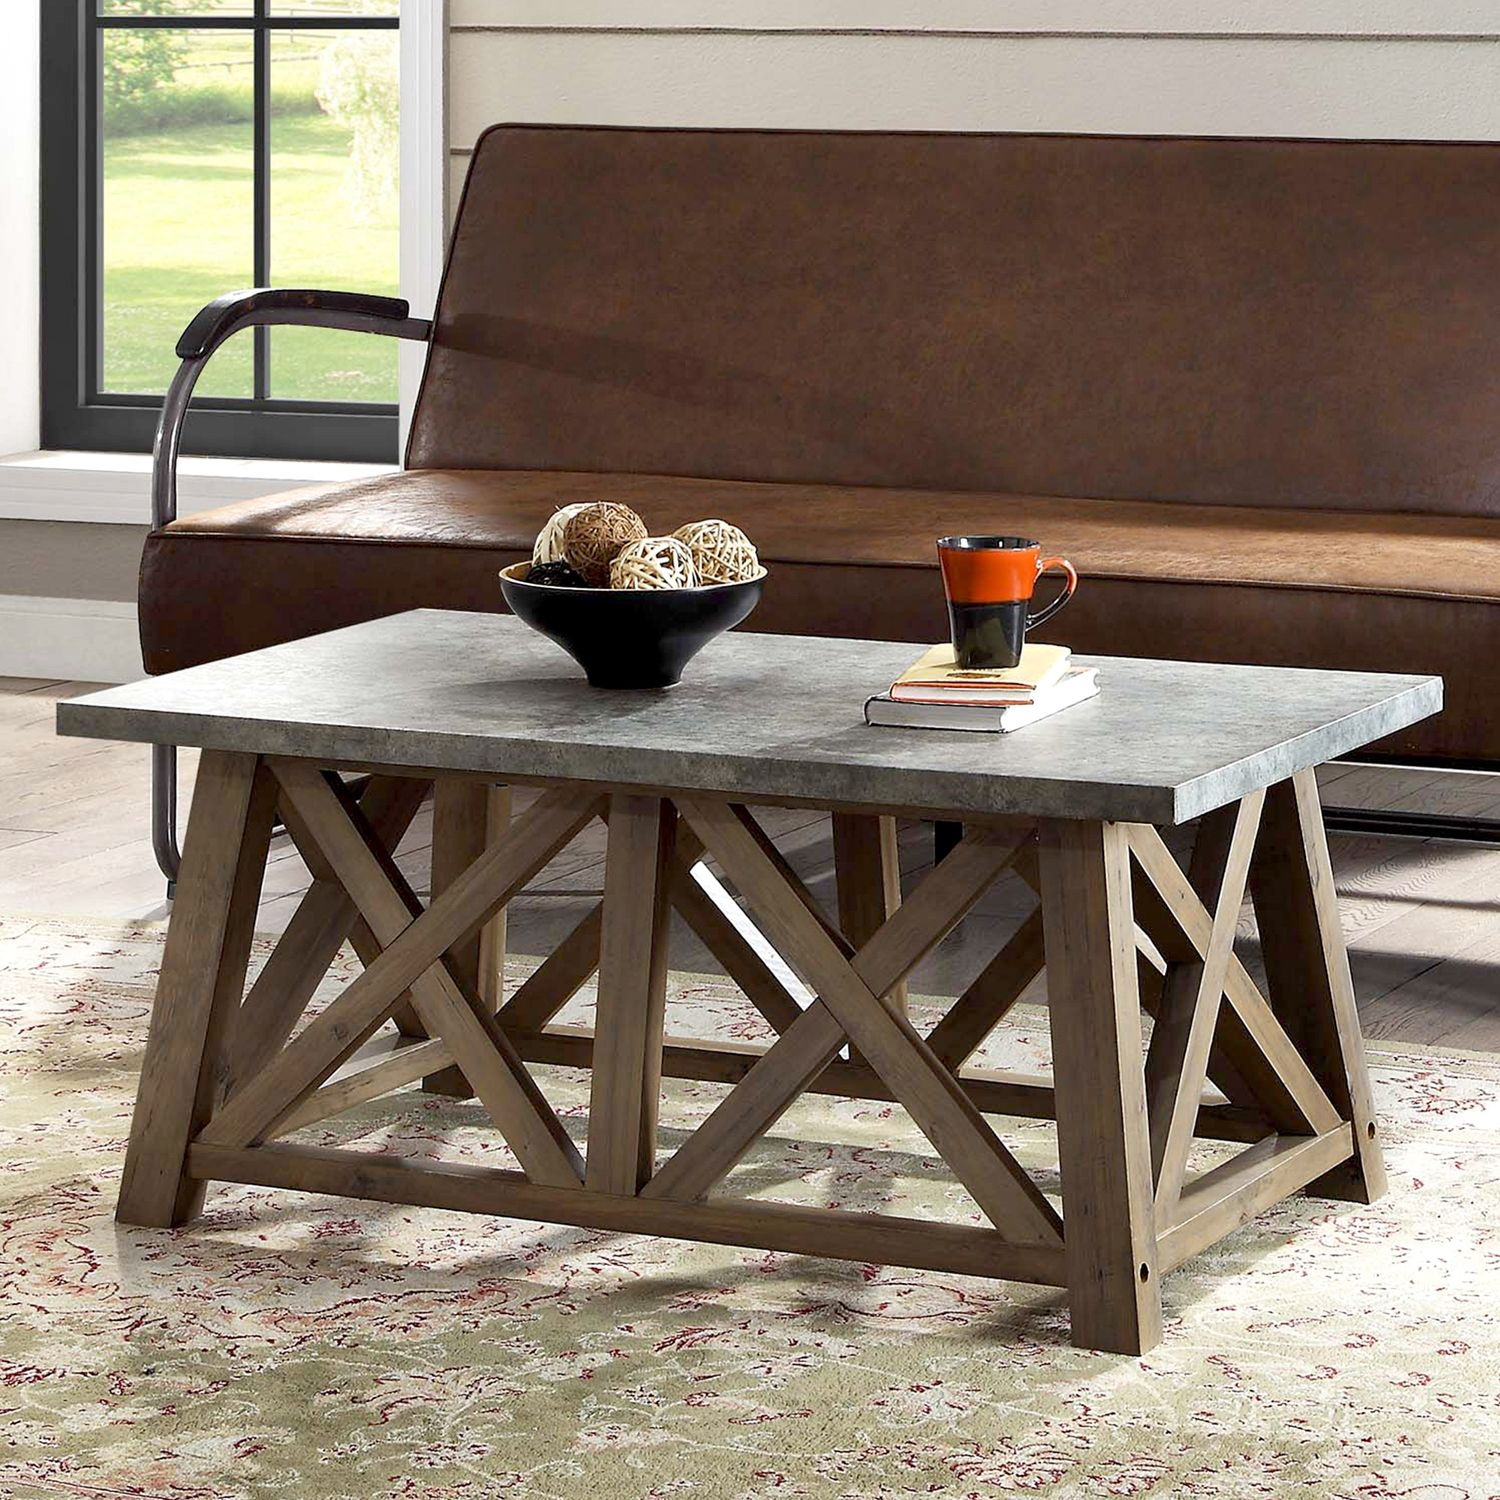 Home In 2020 Rustic Coffee Tables Garden Coffee Table Modern